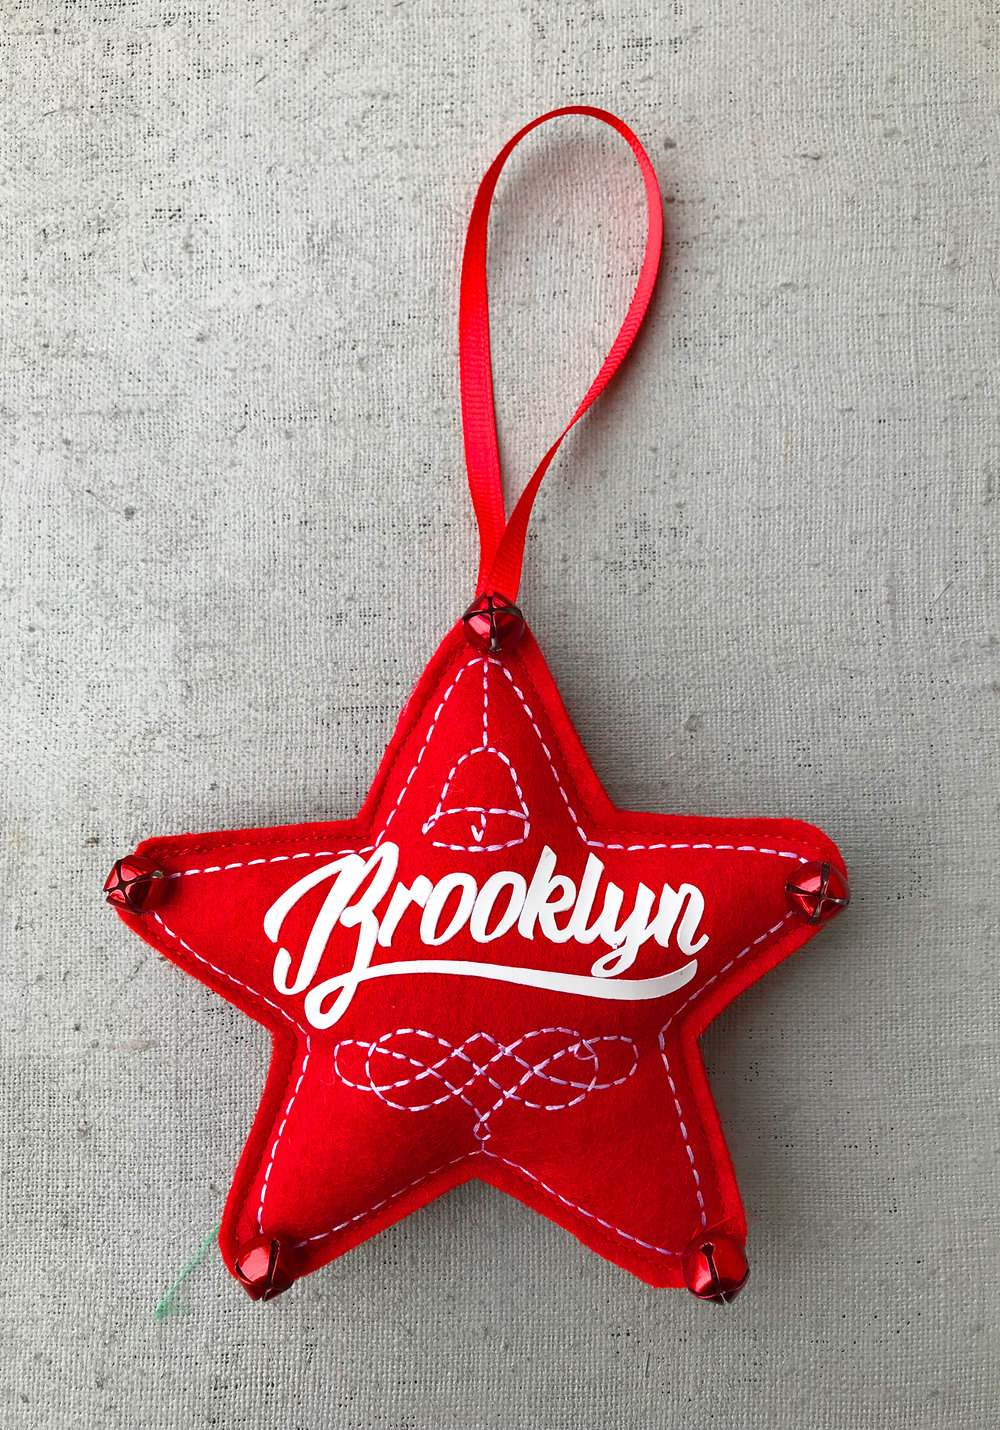 Brooklyn_ornaments copy.jpg